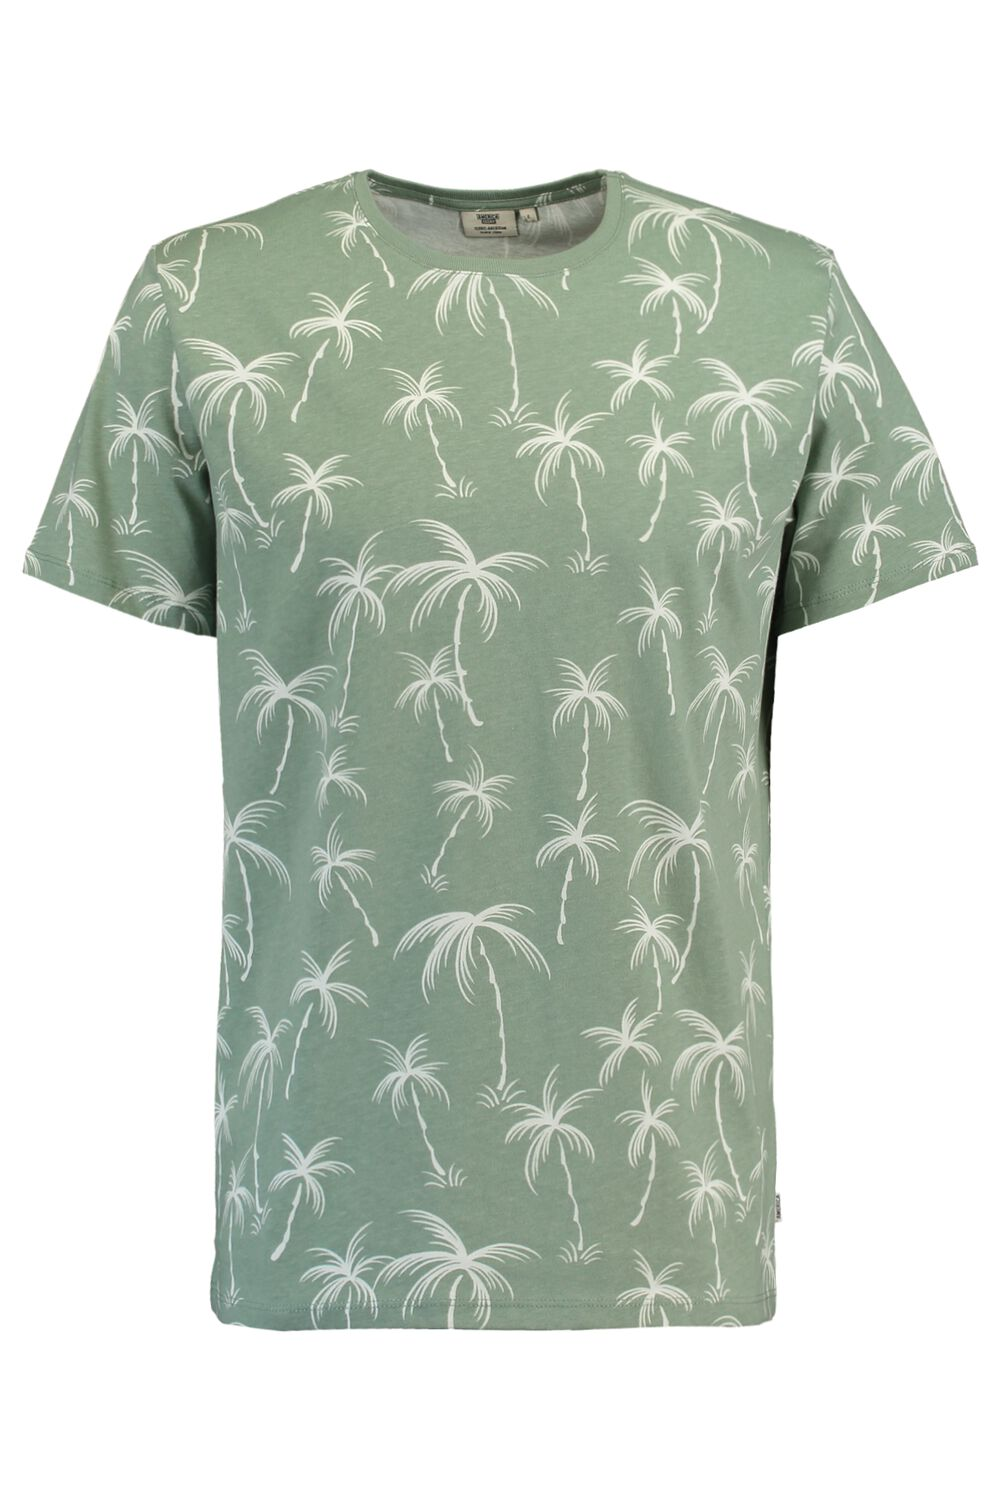 America Today Heren T-shirt Edwald Palm Groen